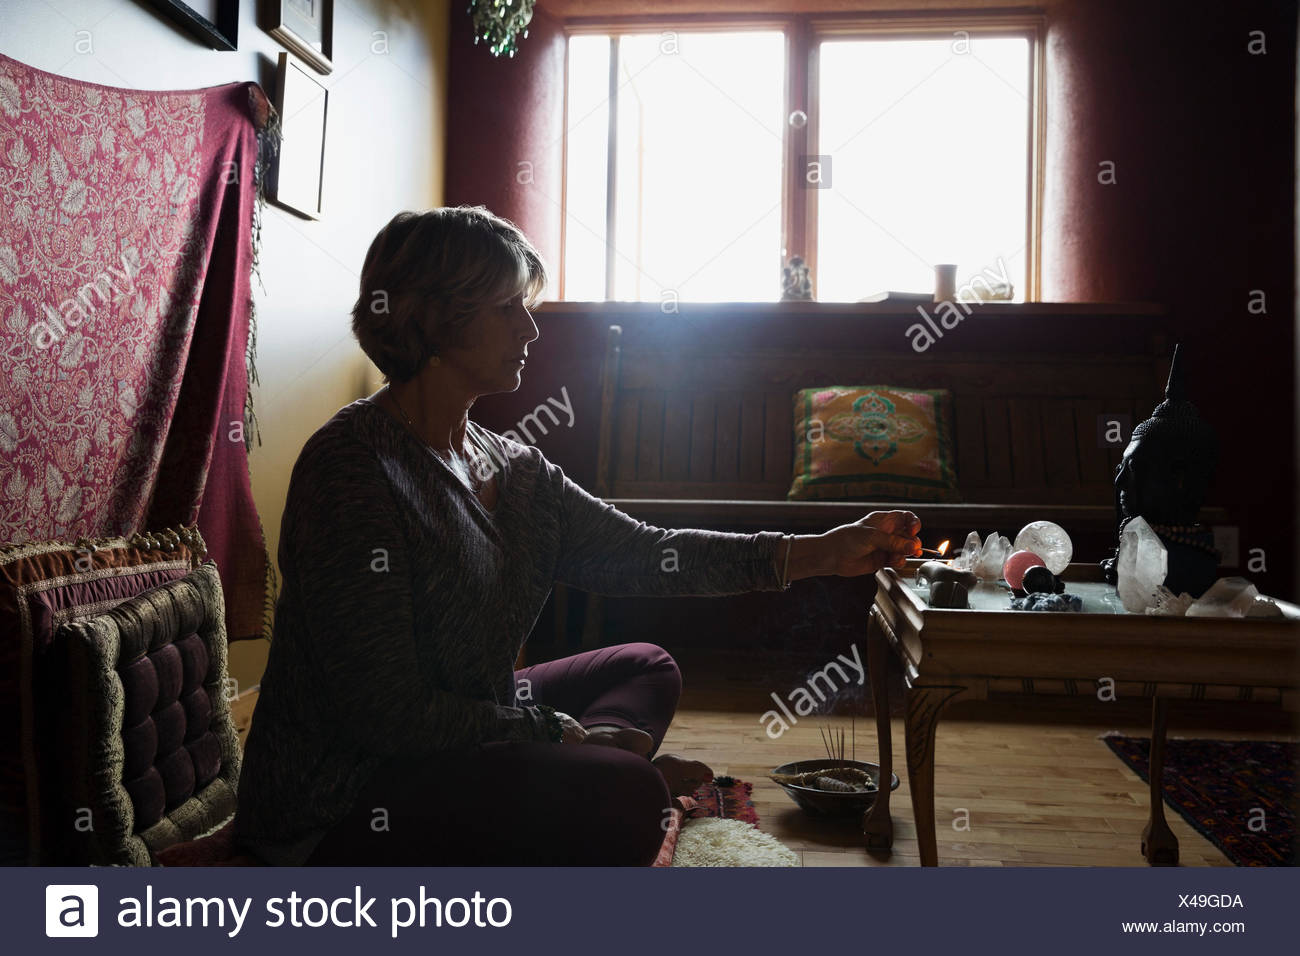 Senior woman lighting incense in meditation room - Stock Image